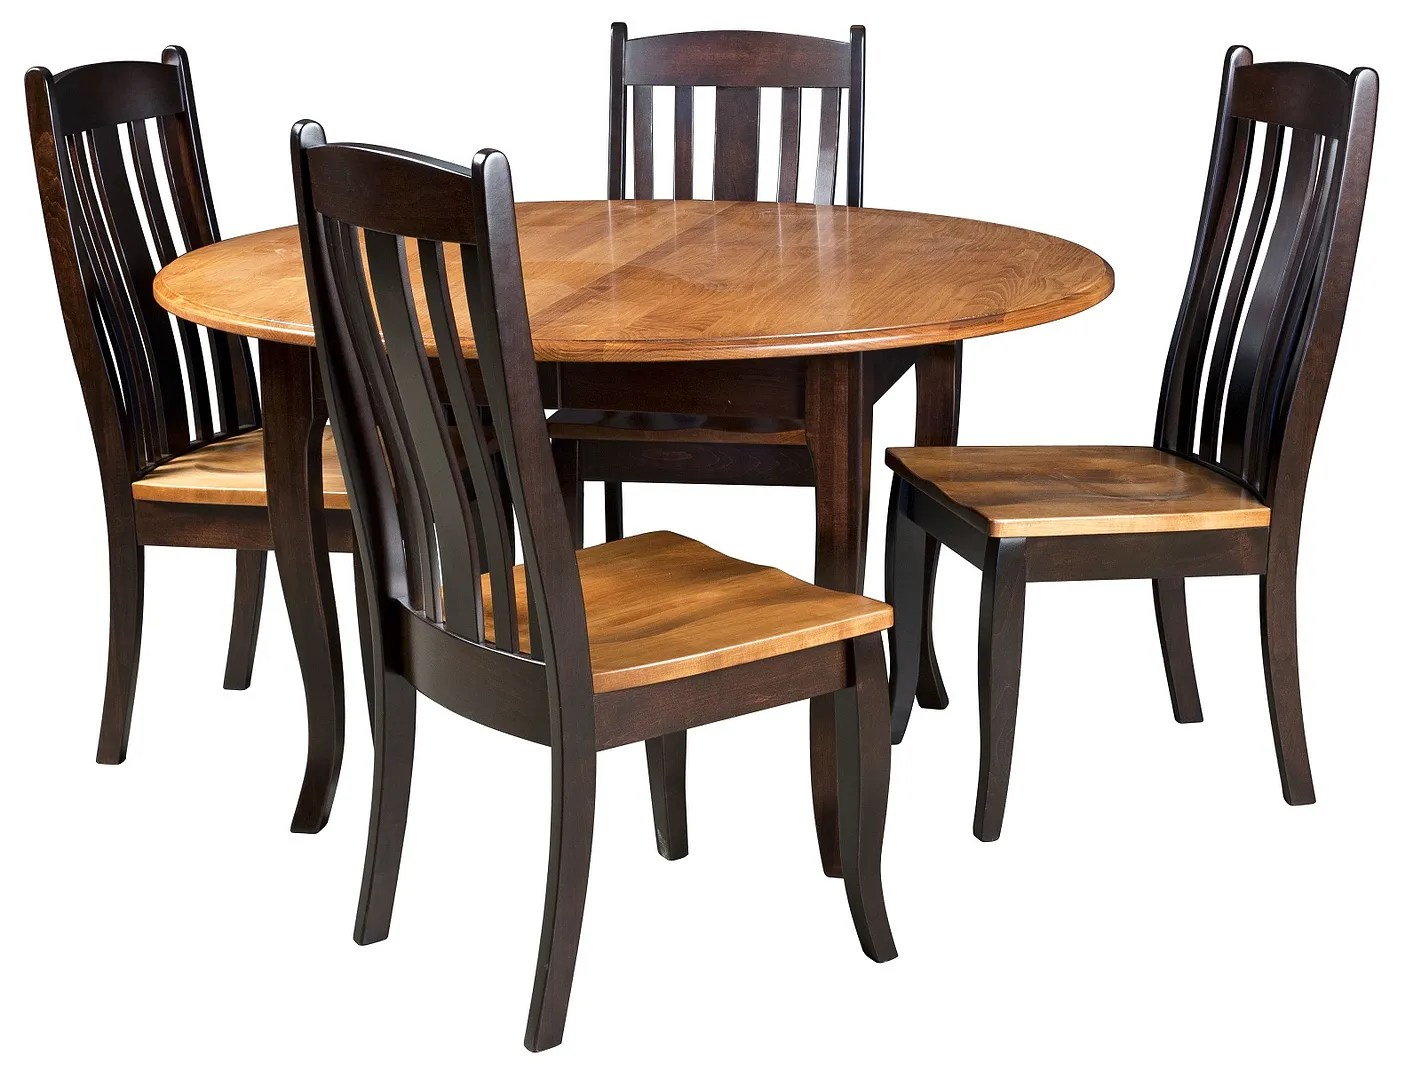 Country Dining Chairs Amish Round Dining Table Chairs Set Solid Wood Leg 2 Tone